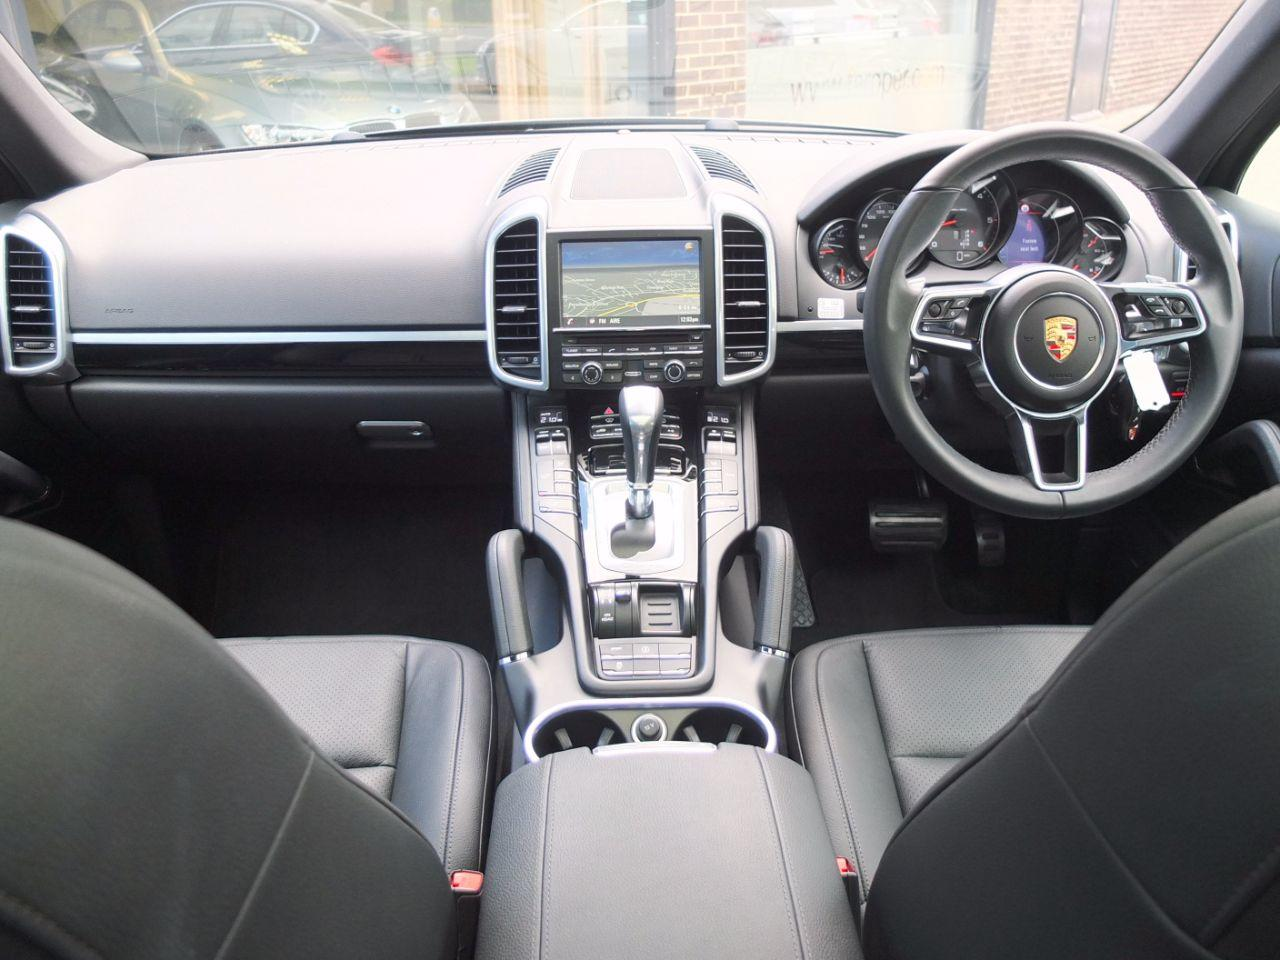 Porsche Cayenne 3.0 Diesel Tiptronic S (Facelift Model, Panoramic Roof +++Spec) Estate Diesel Jet Black Metallic